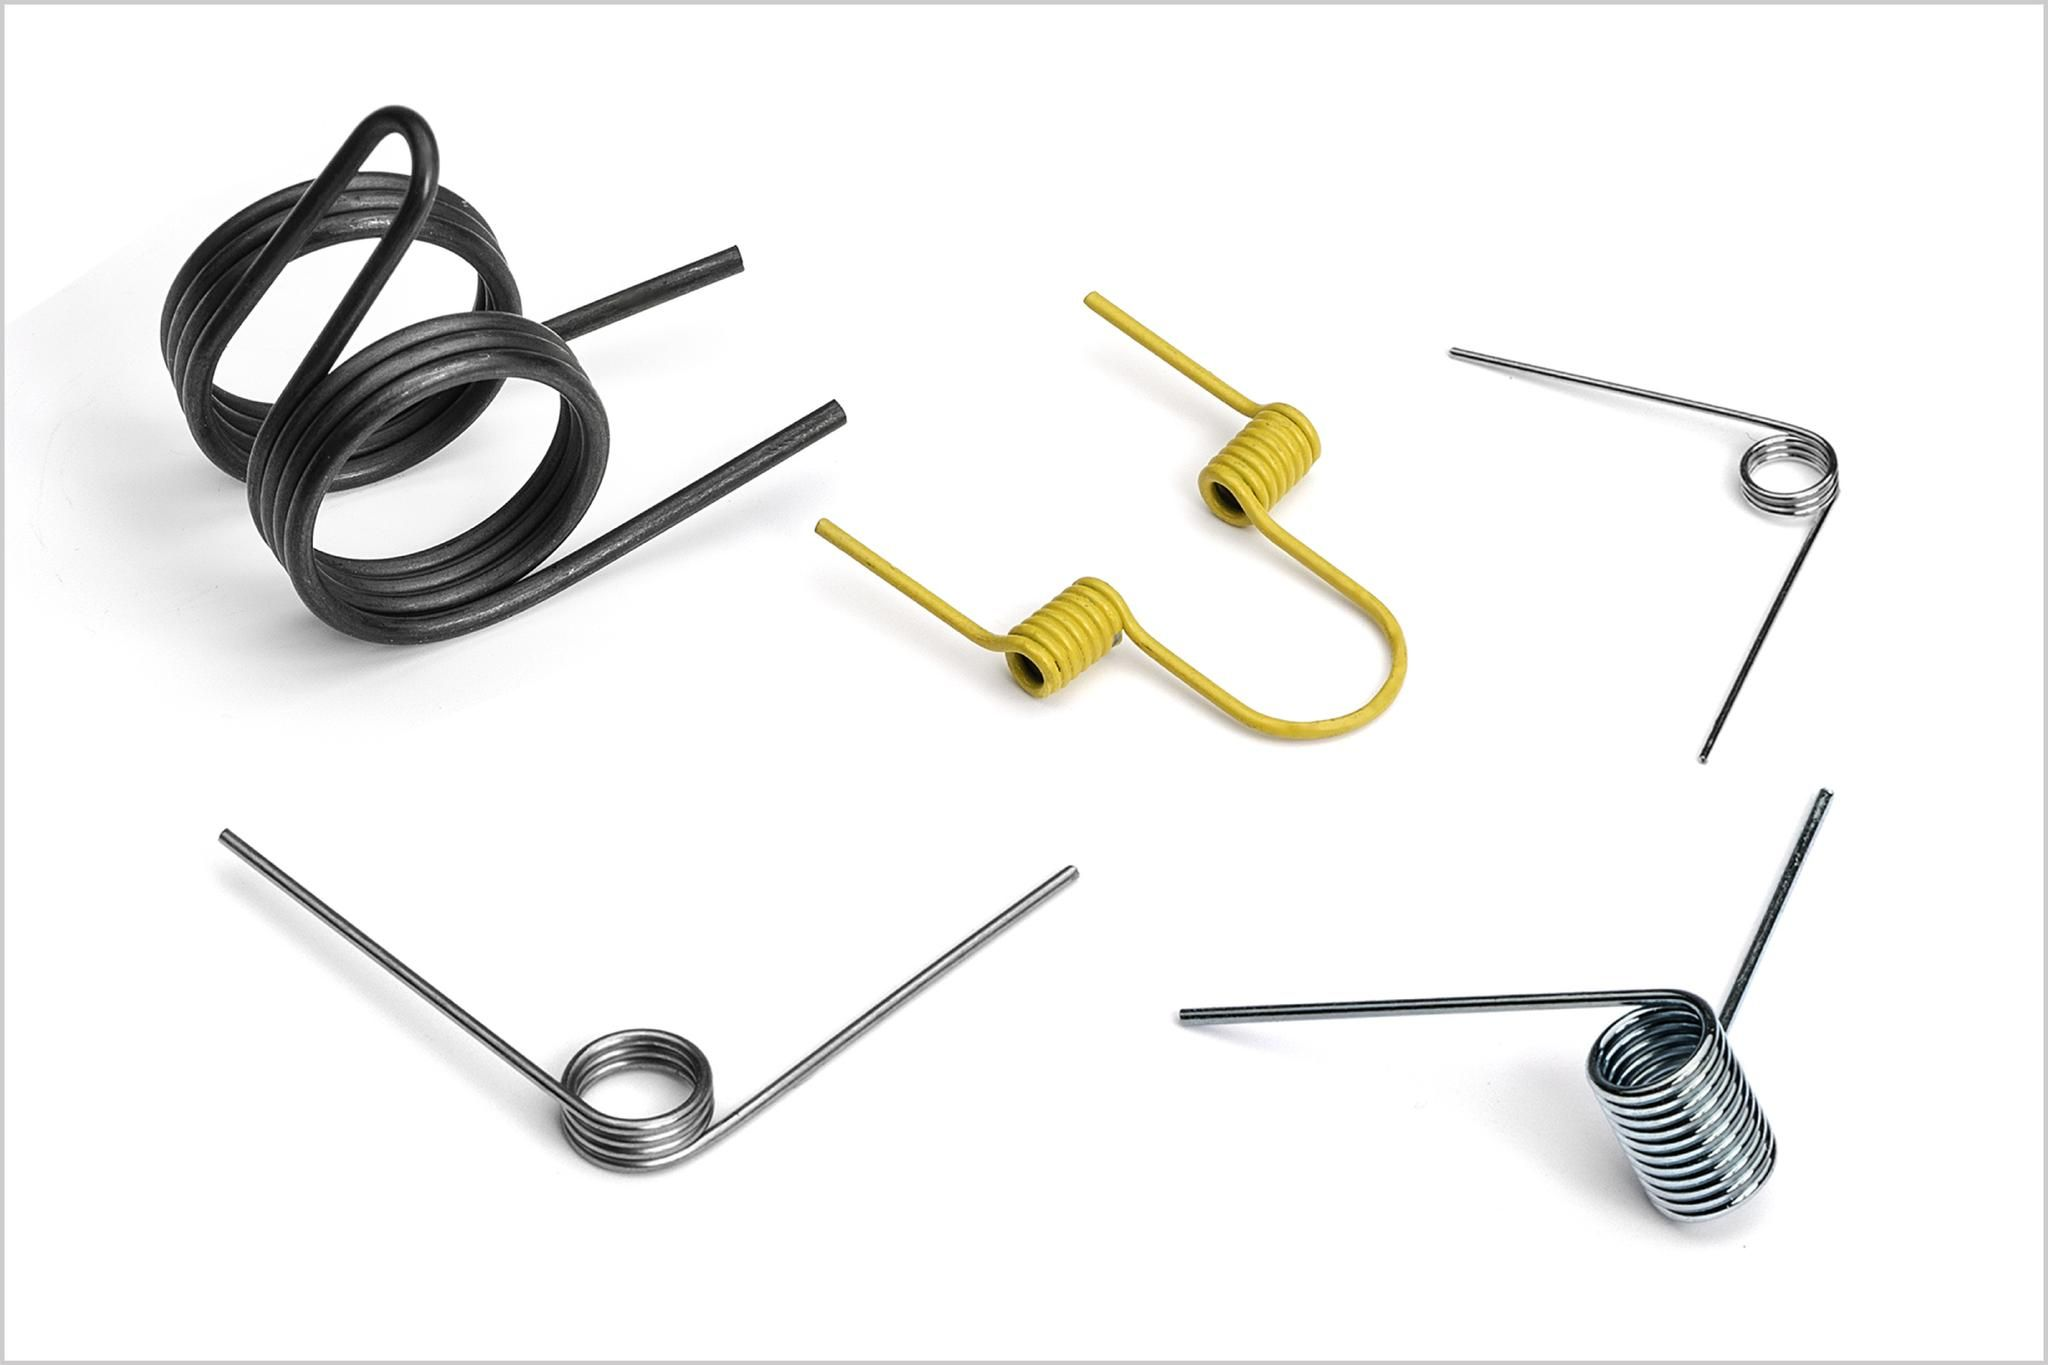 Torsion Springs offer axial energy and control - from Lee Spring